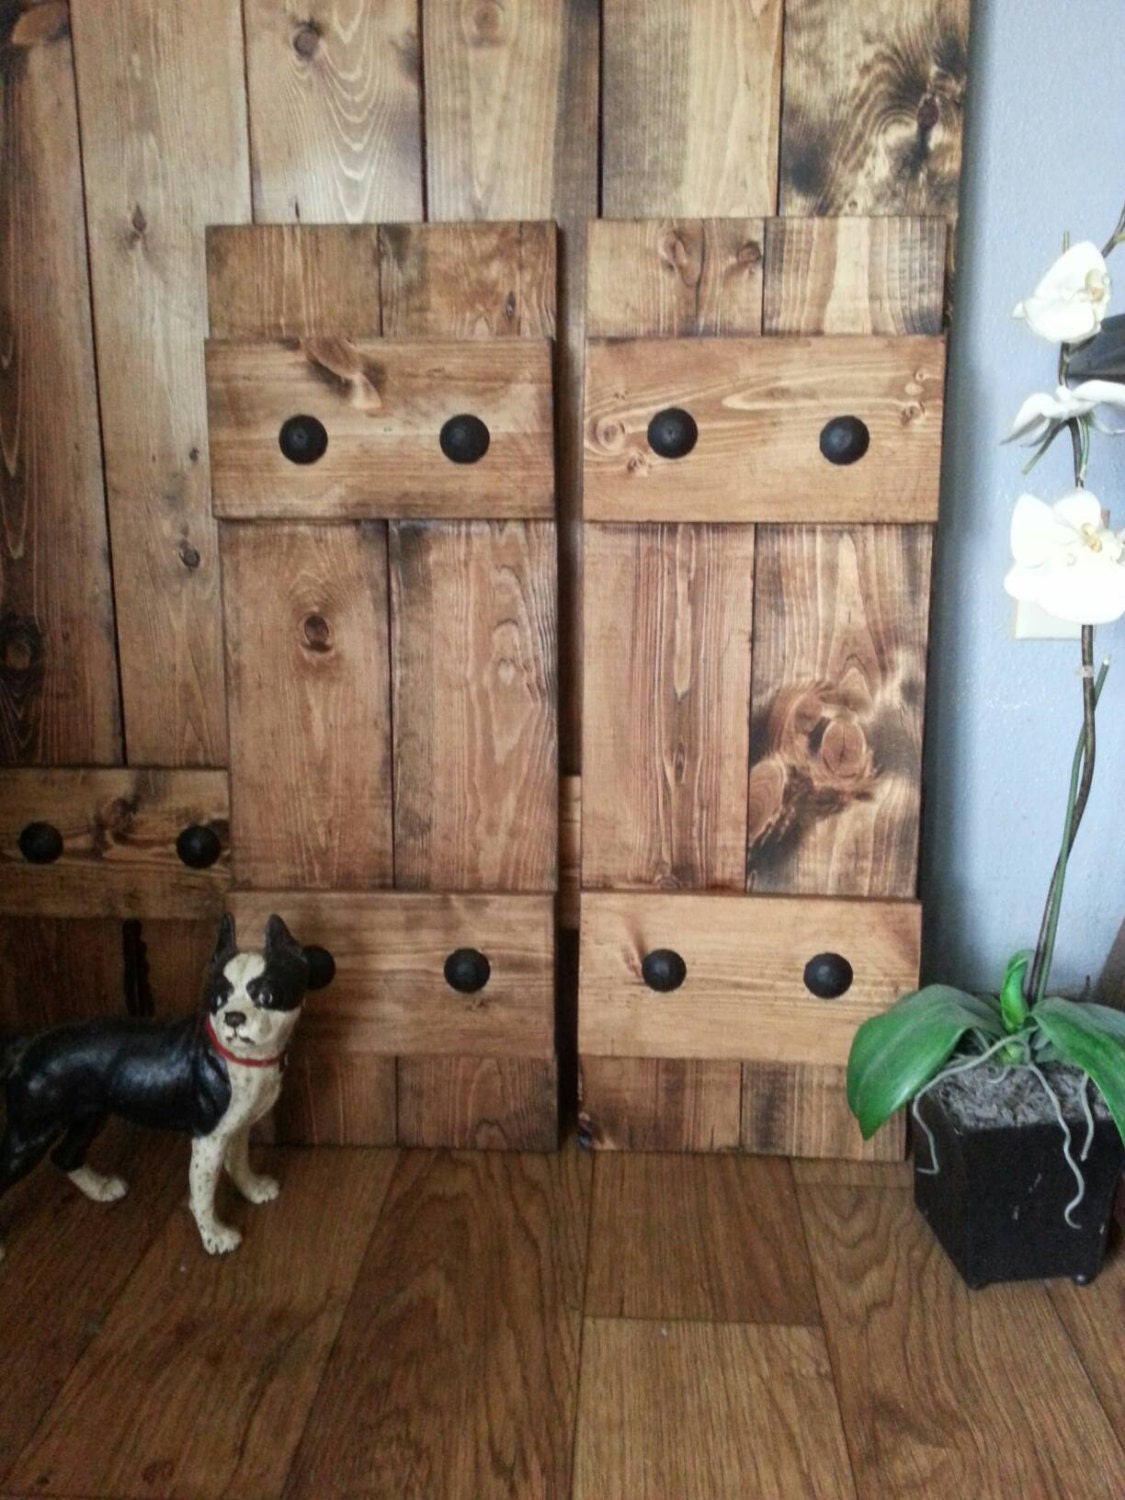 RUSTIC Wood Shutters With Clavos   Decorative Shutters   Primitive Shutters    Interior/Exterior   Wall Decor   Headboard   Wooden Shutters